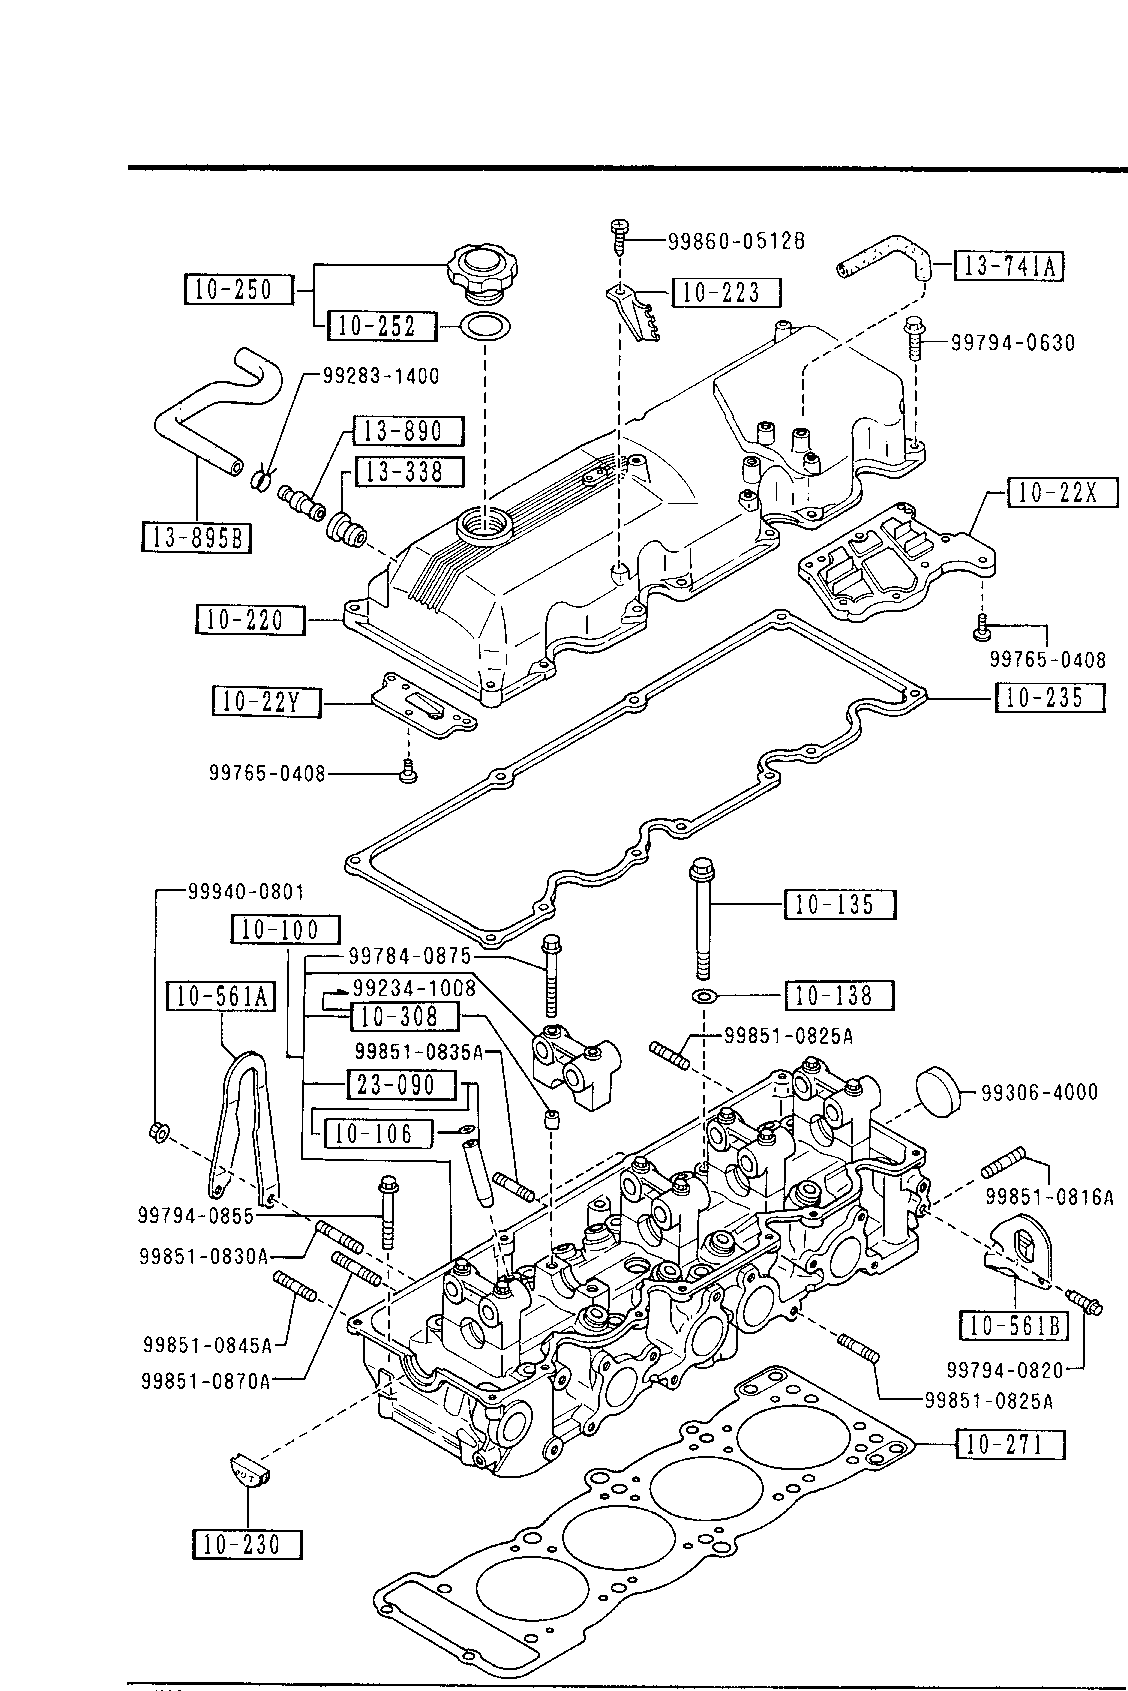 1987 Mazda Engine Part Diagram